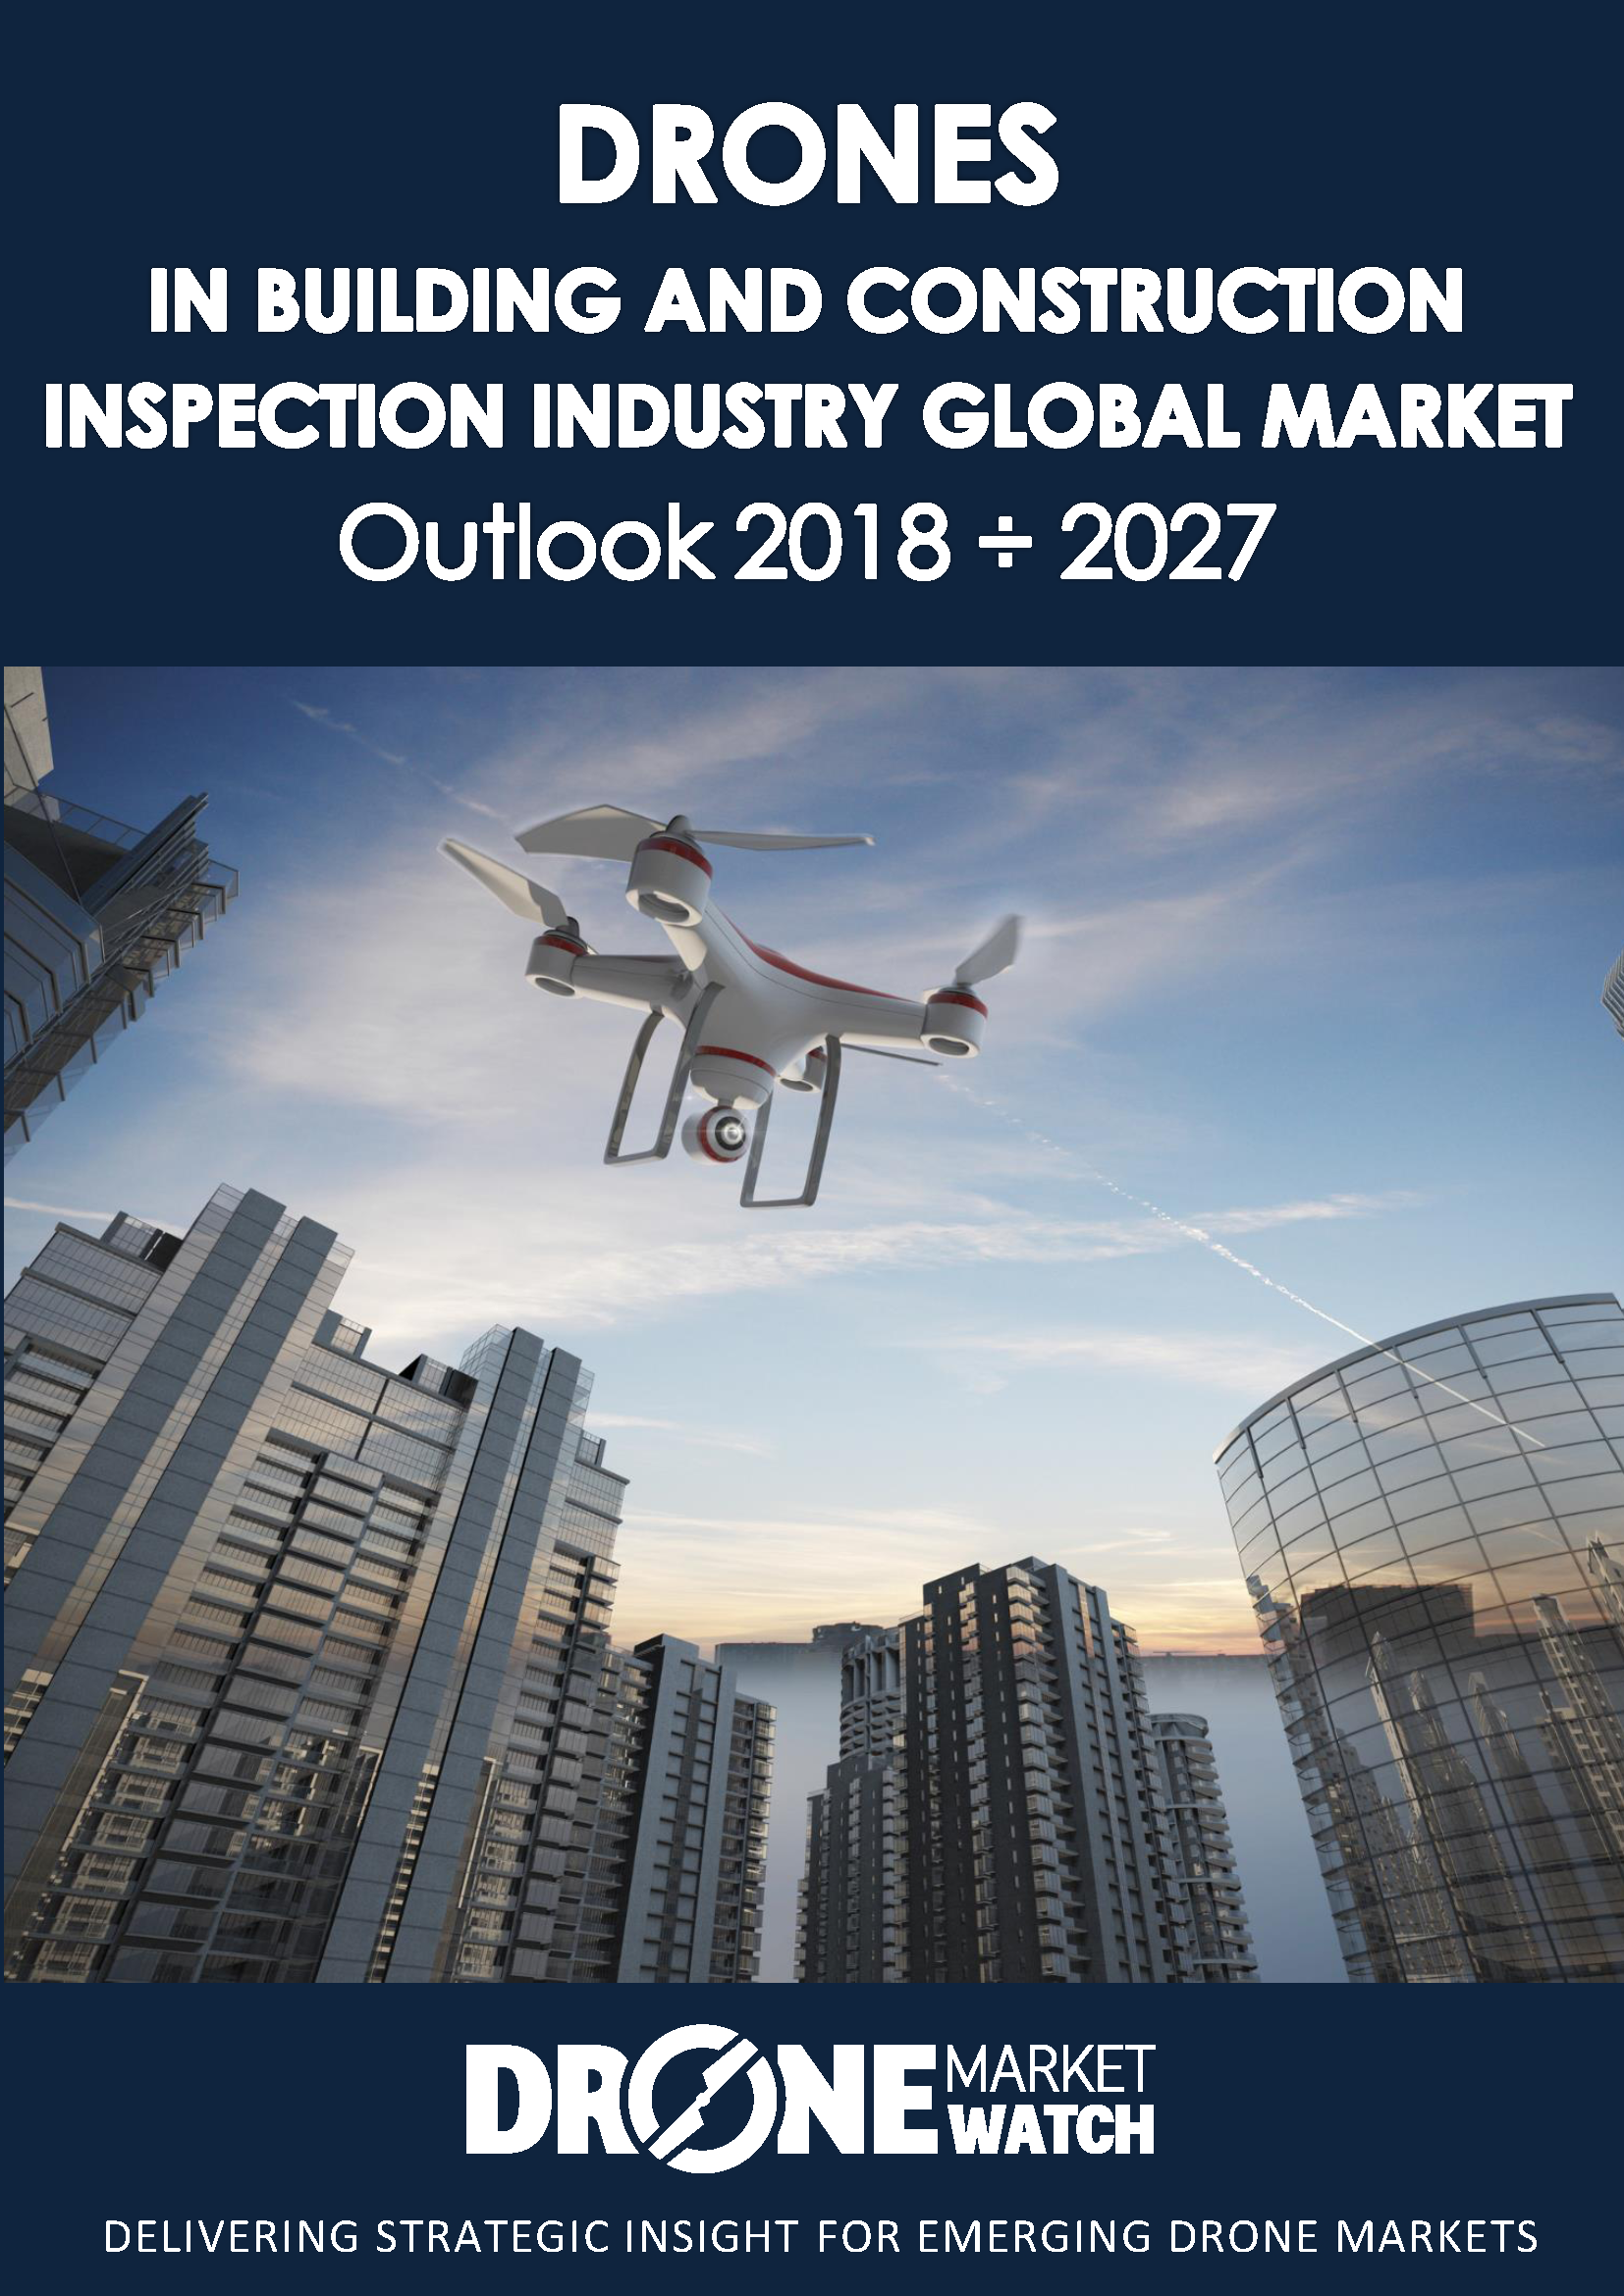 Drones in Building and Construction Inspection Global Market Outlook 2018 - 2027